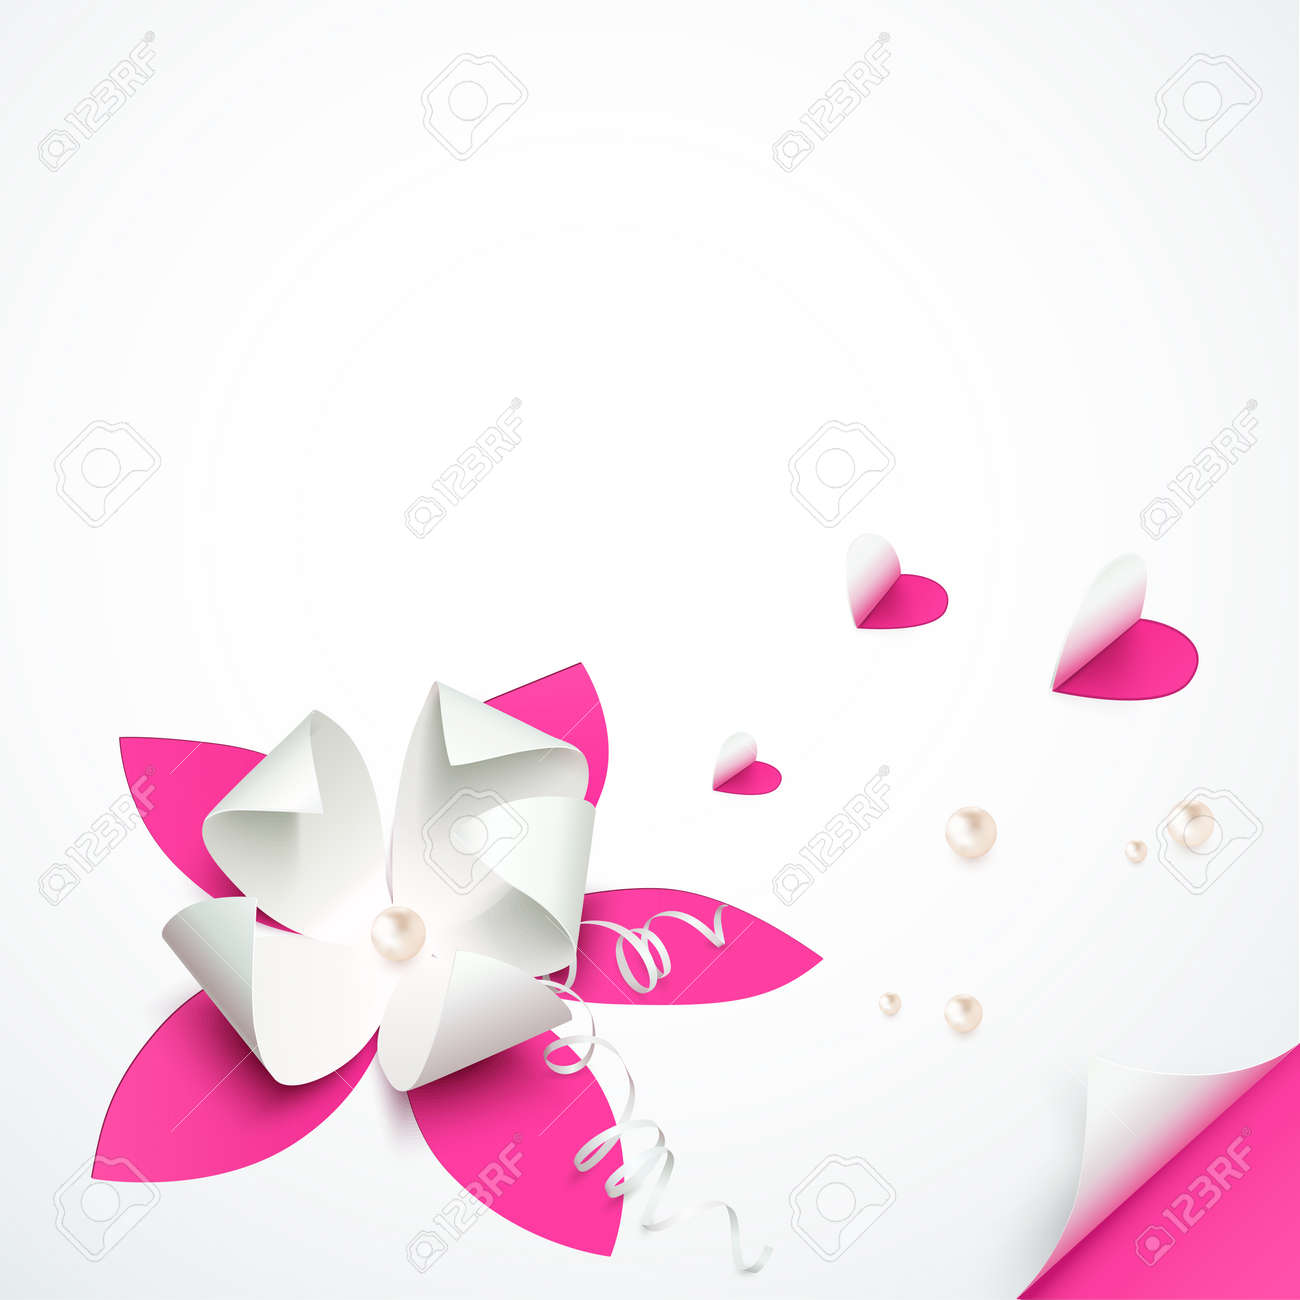 Pink Cutout Paper Flowers Vector Greeting Card Template Royalty Free